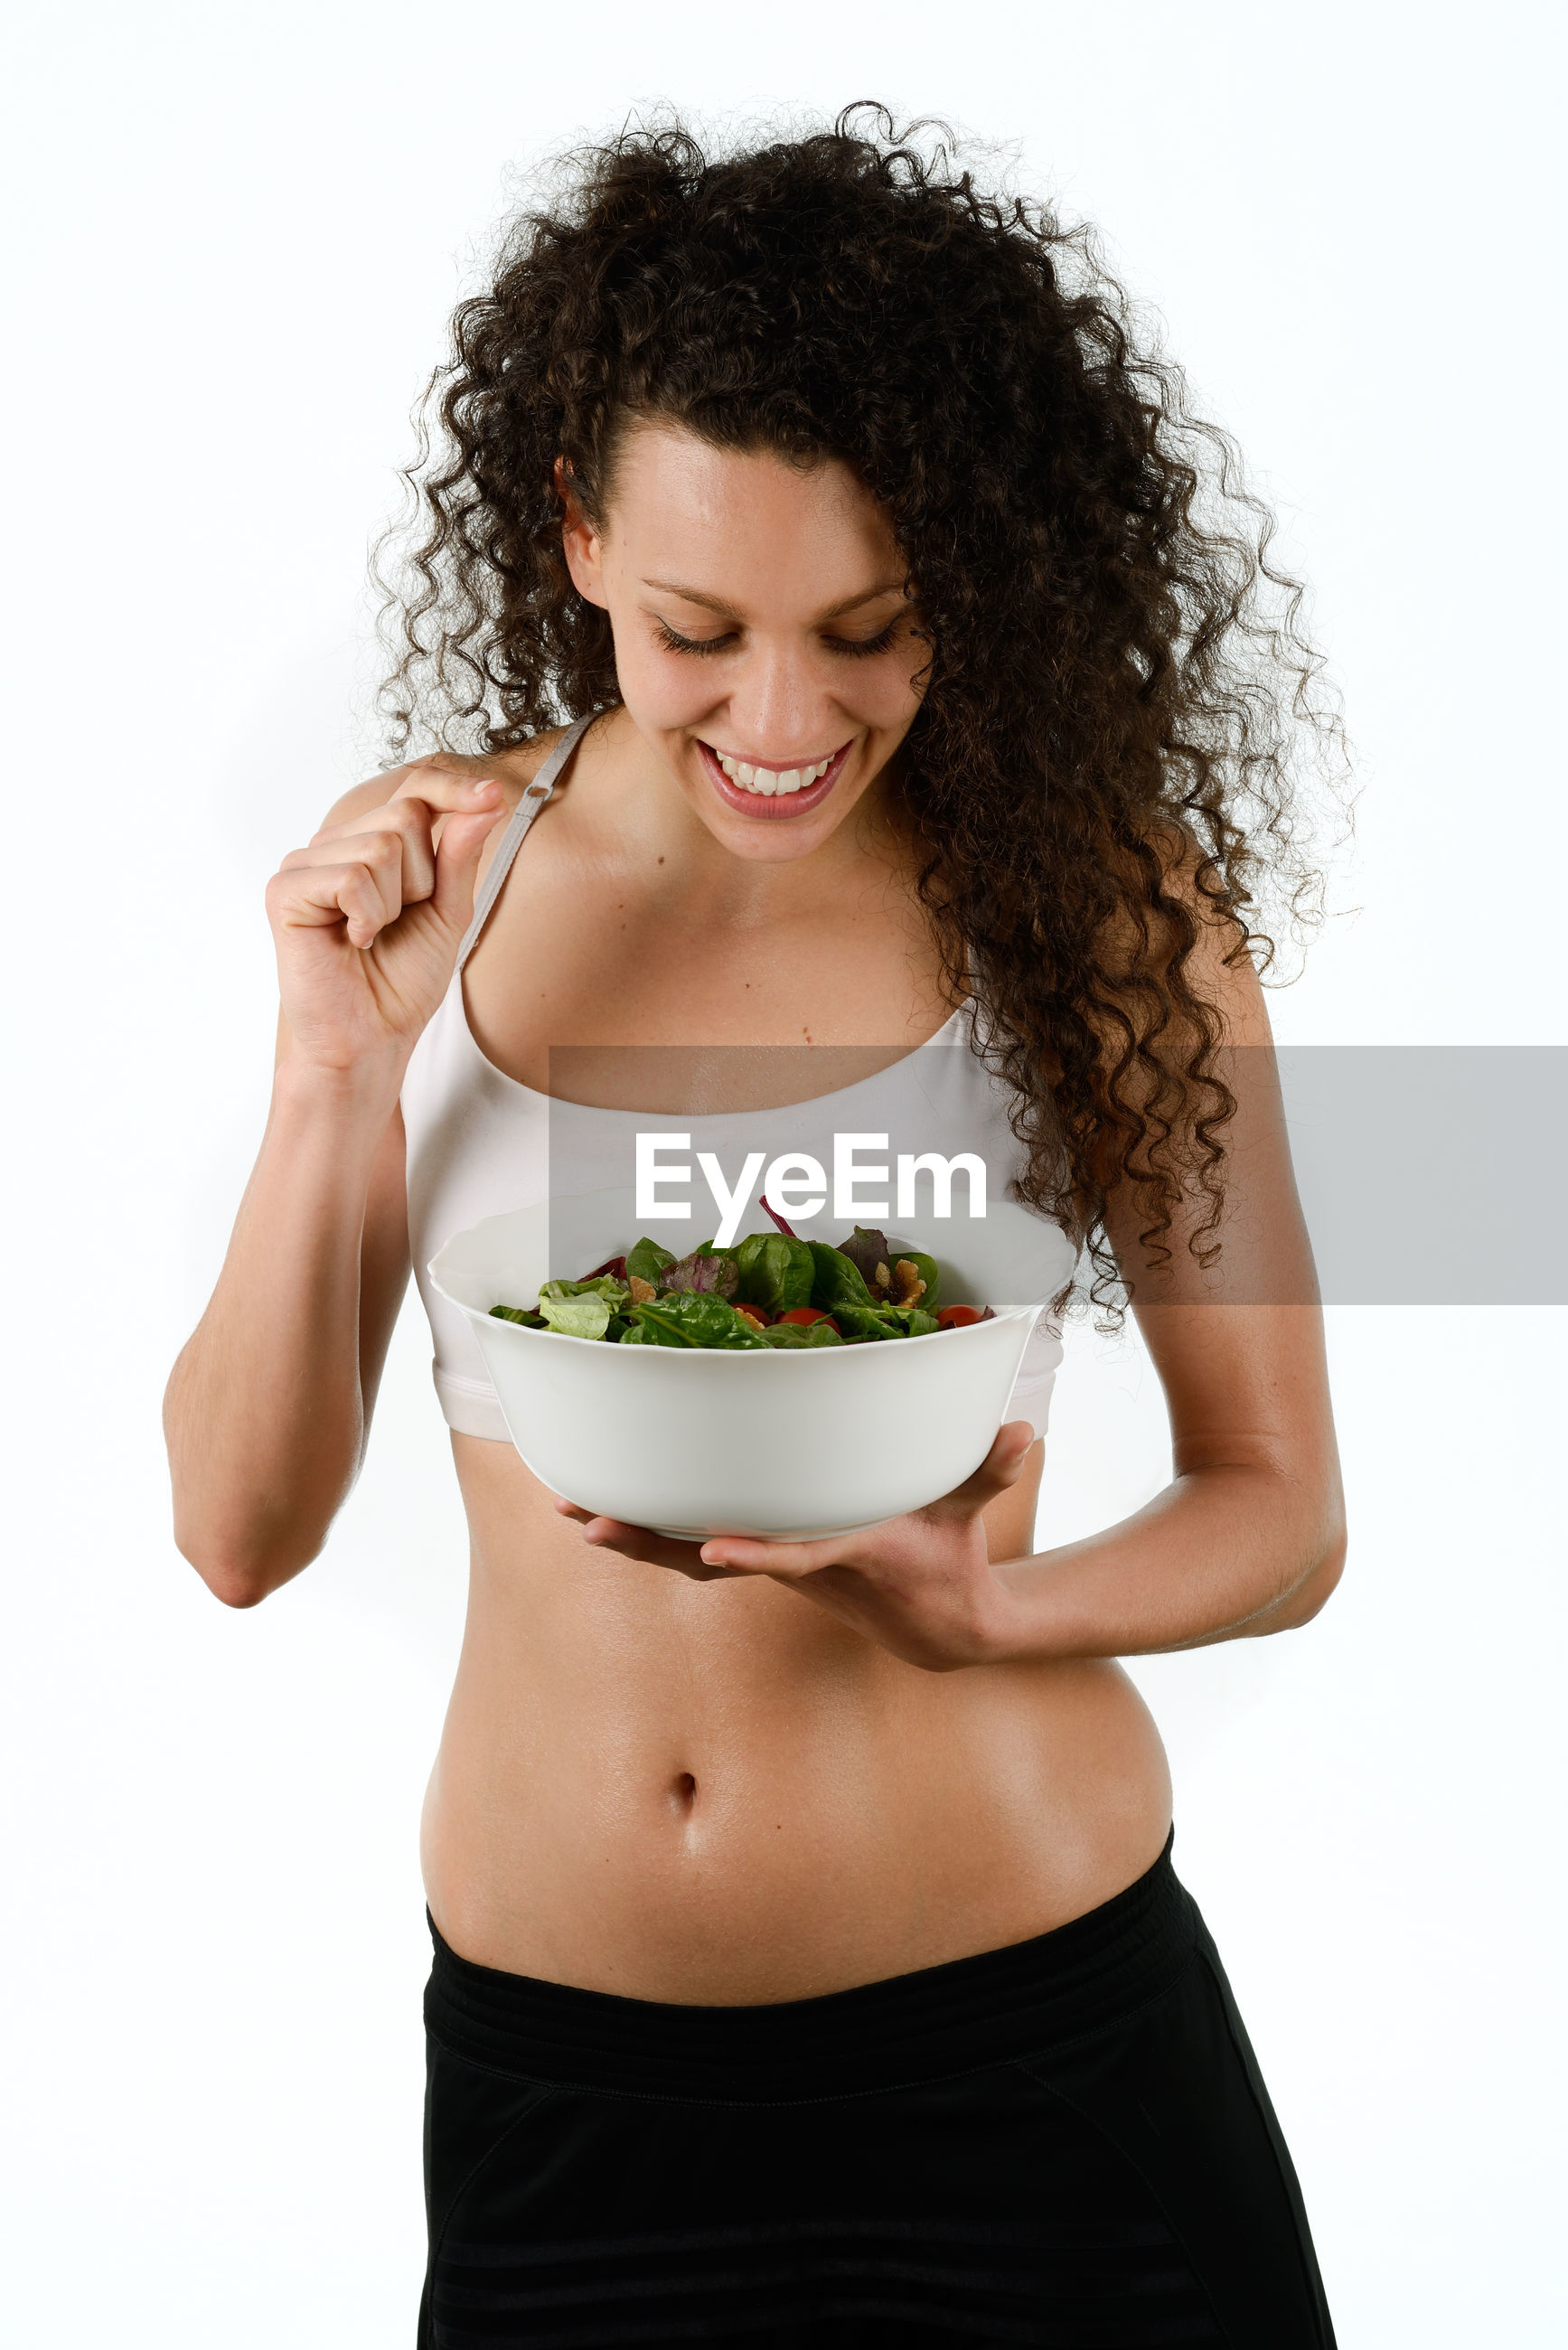 Smiling woman holding vegetables in bowl against white background